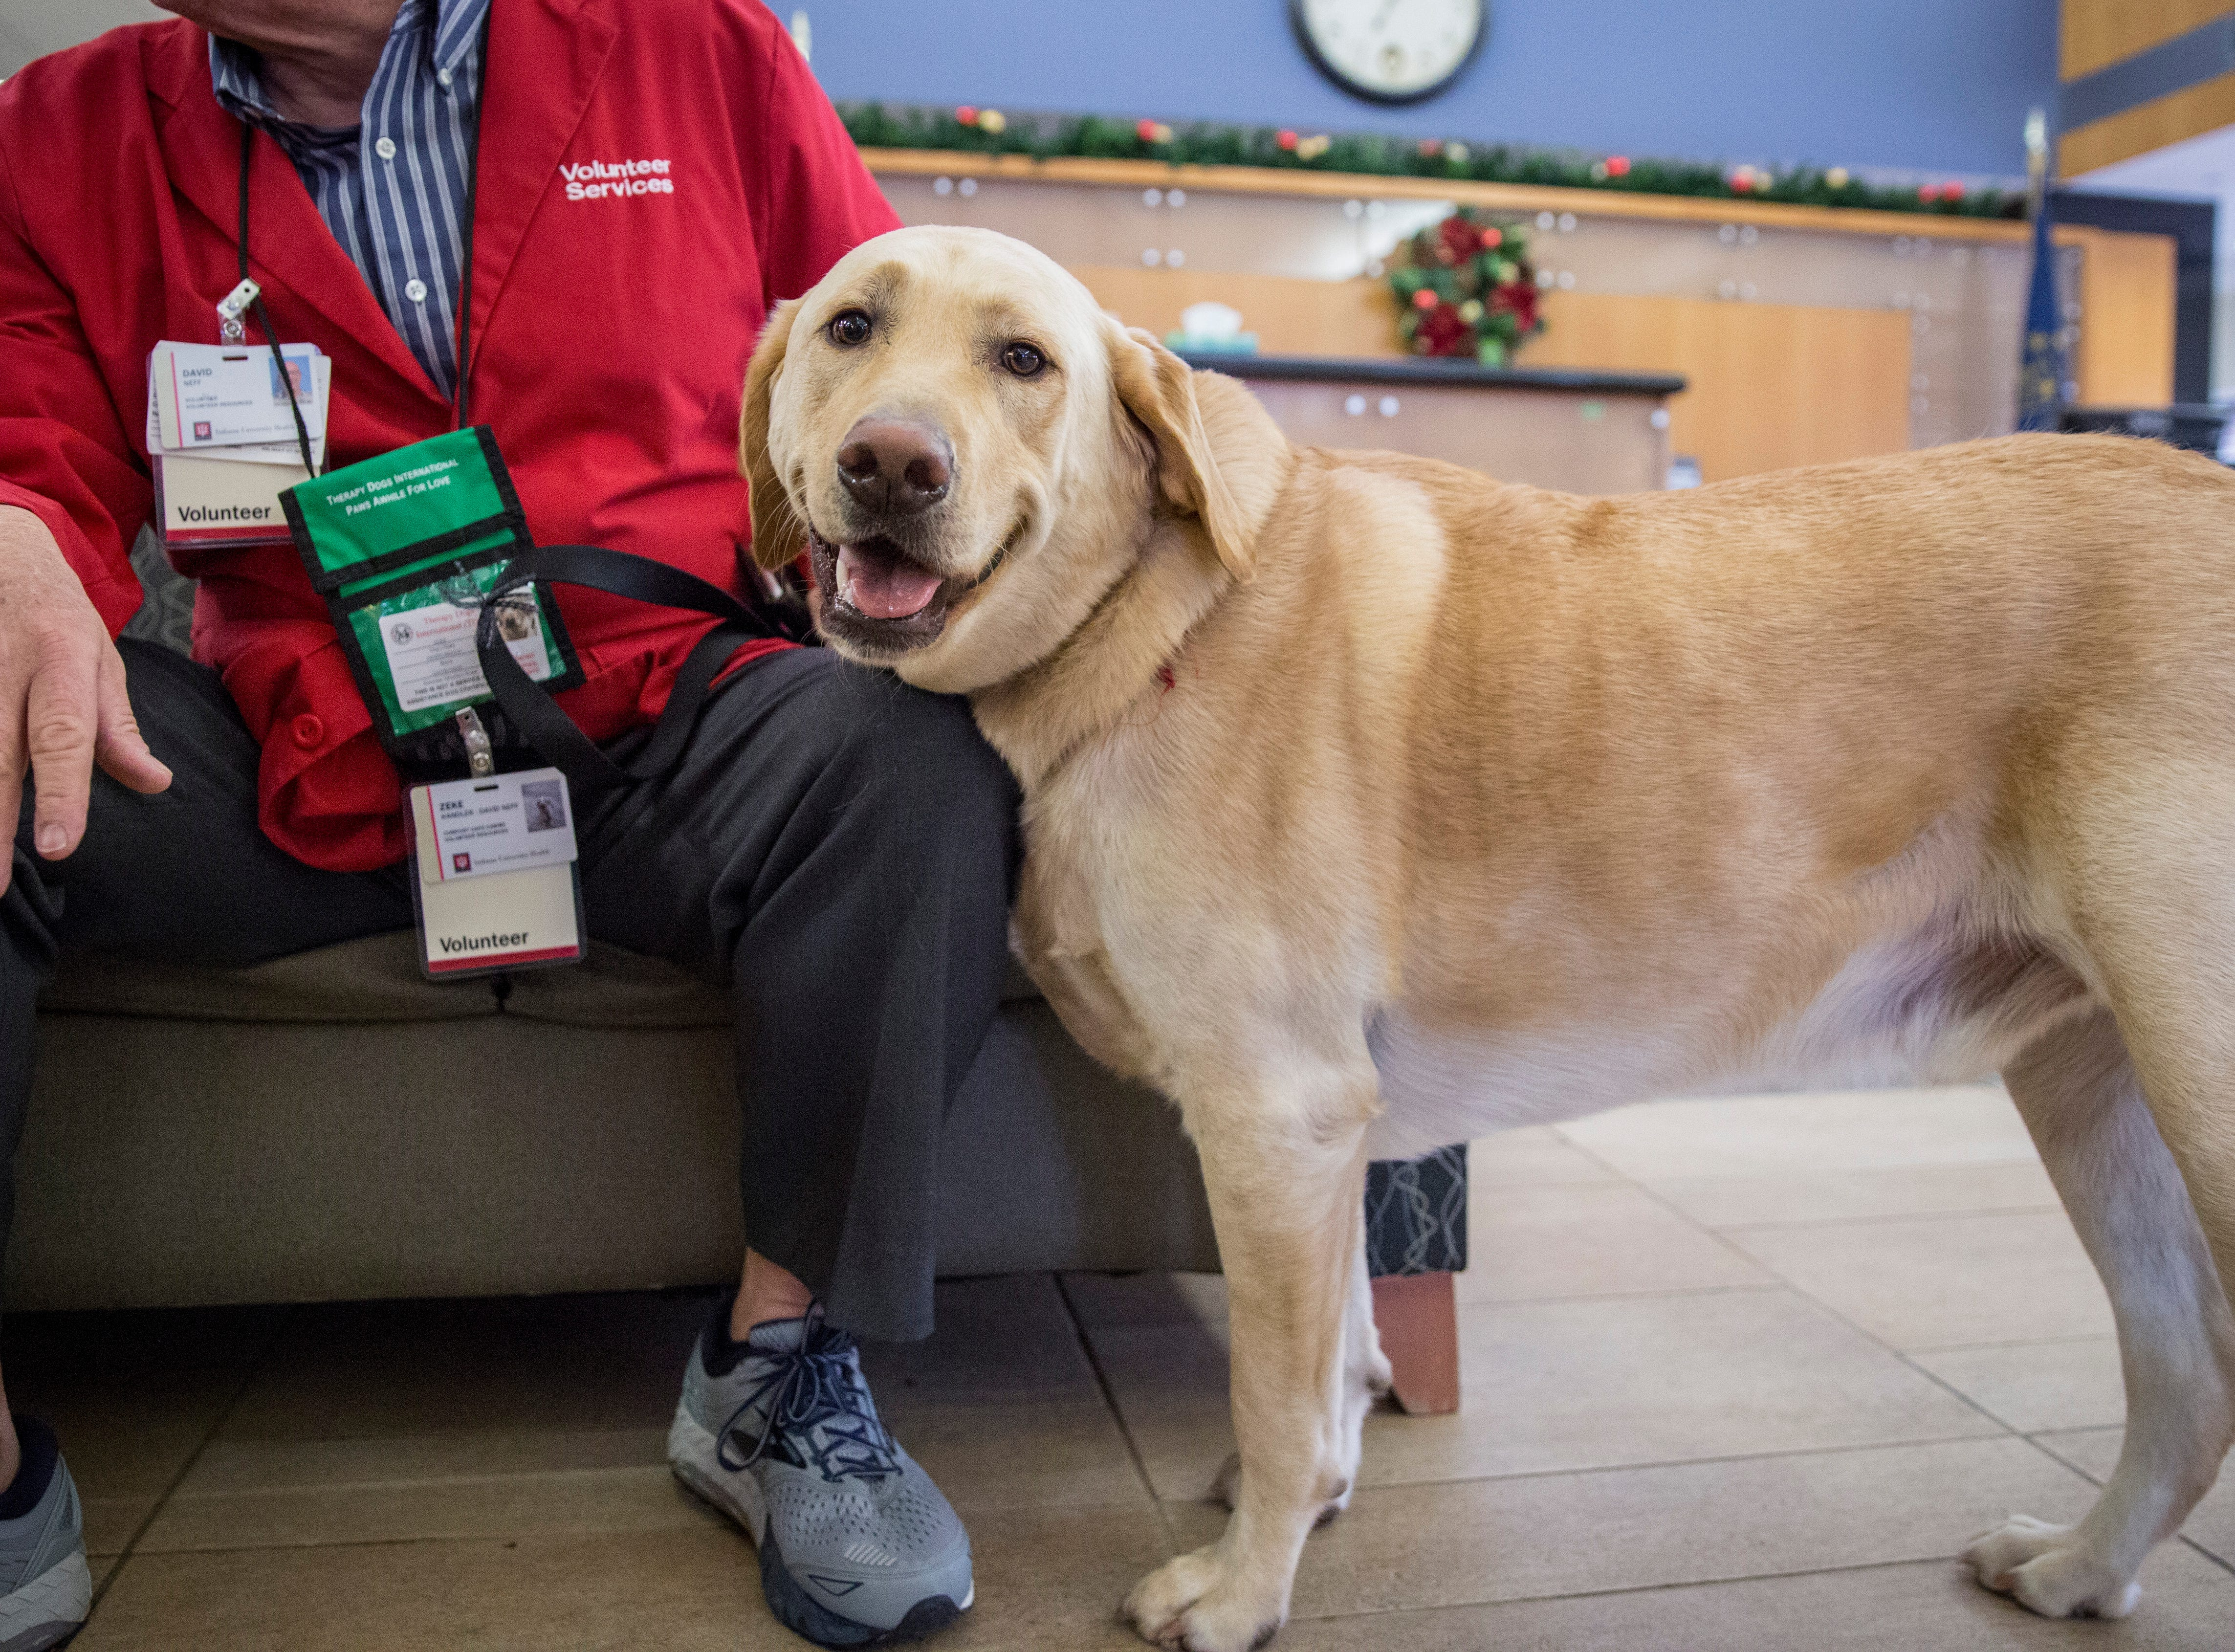 David Neff, followed by his trusty companion, Zeke, a hefty 3-year-old Labrador retriever walk through the halls of IU Health Ball Memorial Hospital to help cheer up staff. Zeke is certified as a therapy dog with Therapy Dogs International as part of the hospital's comfort canines program.